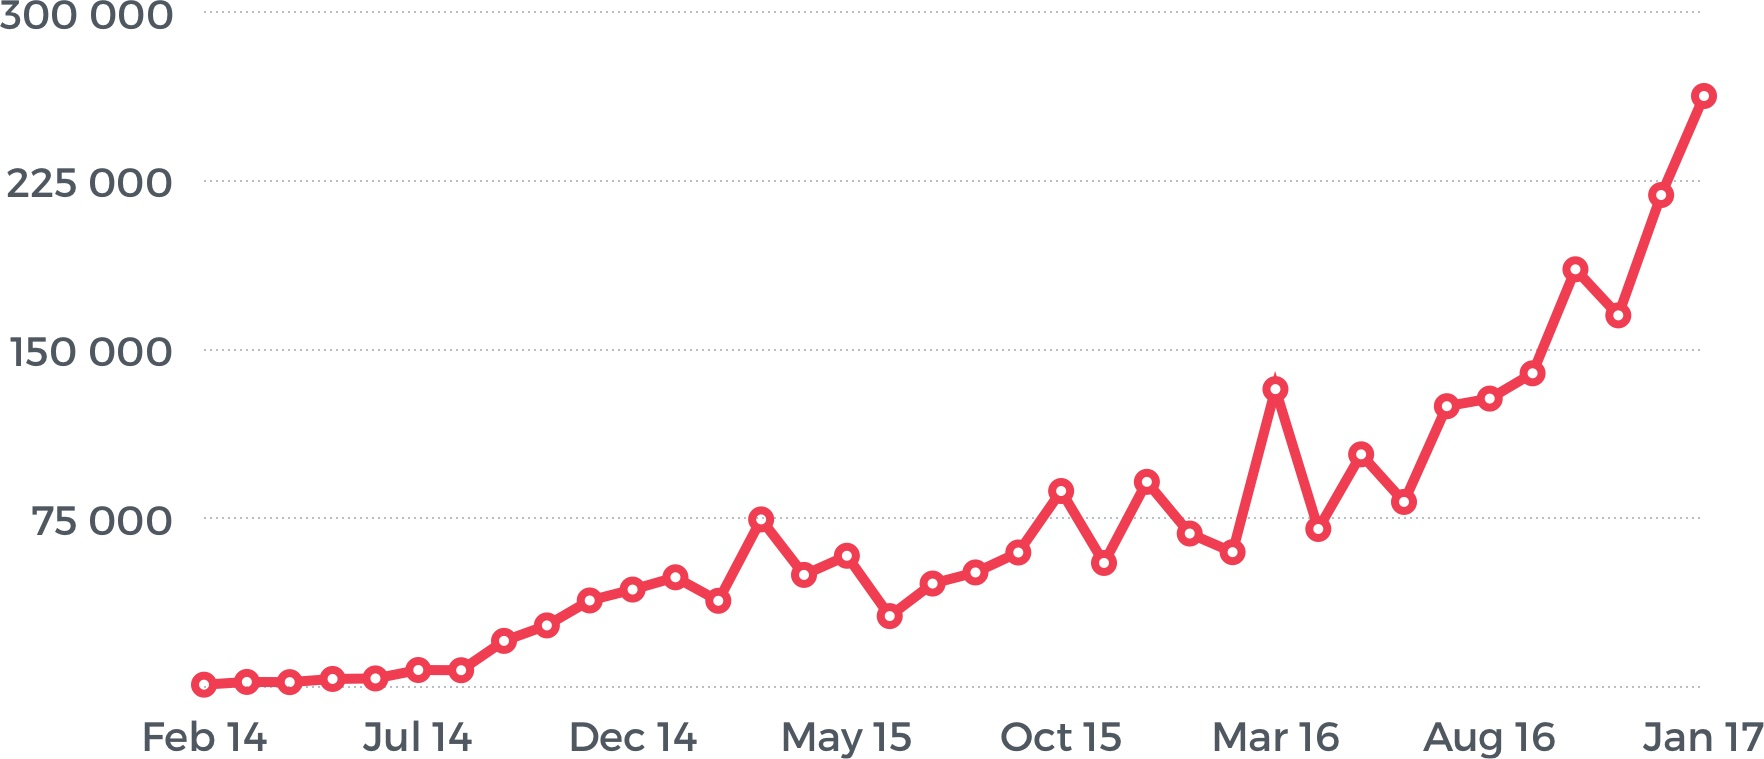 Total traffic to the website